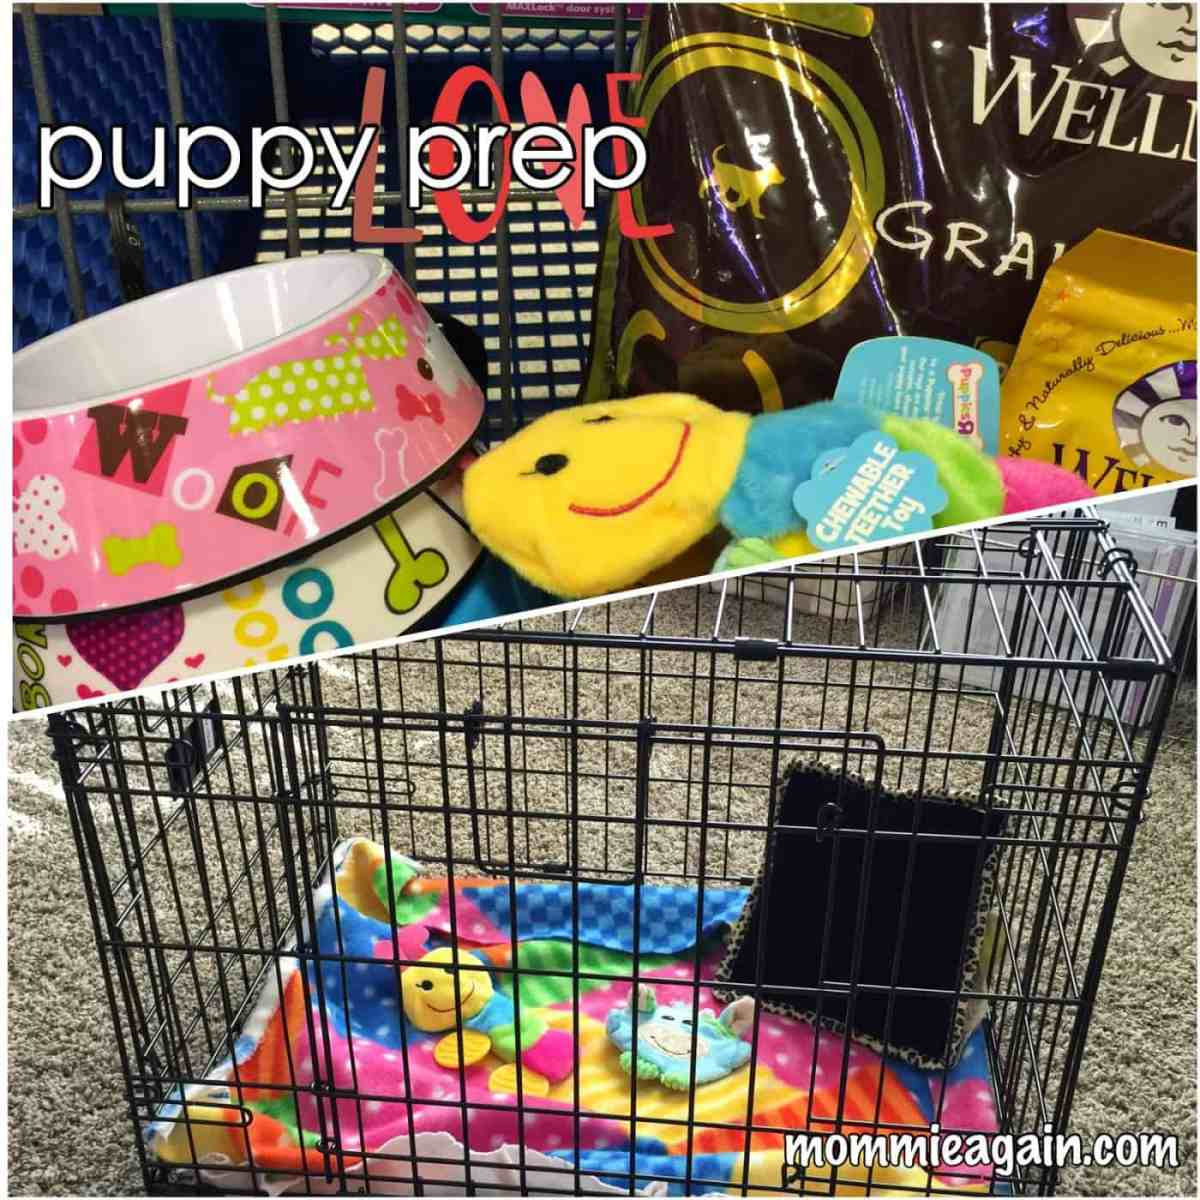 New Puppy Essentials: Preparing for A Puppy